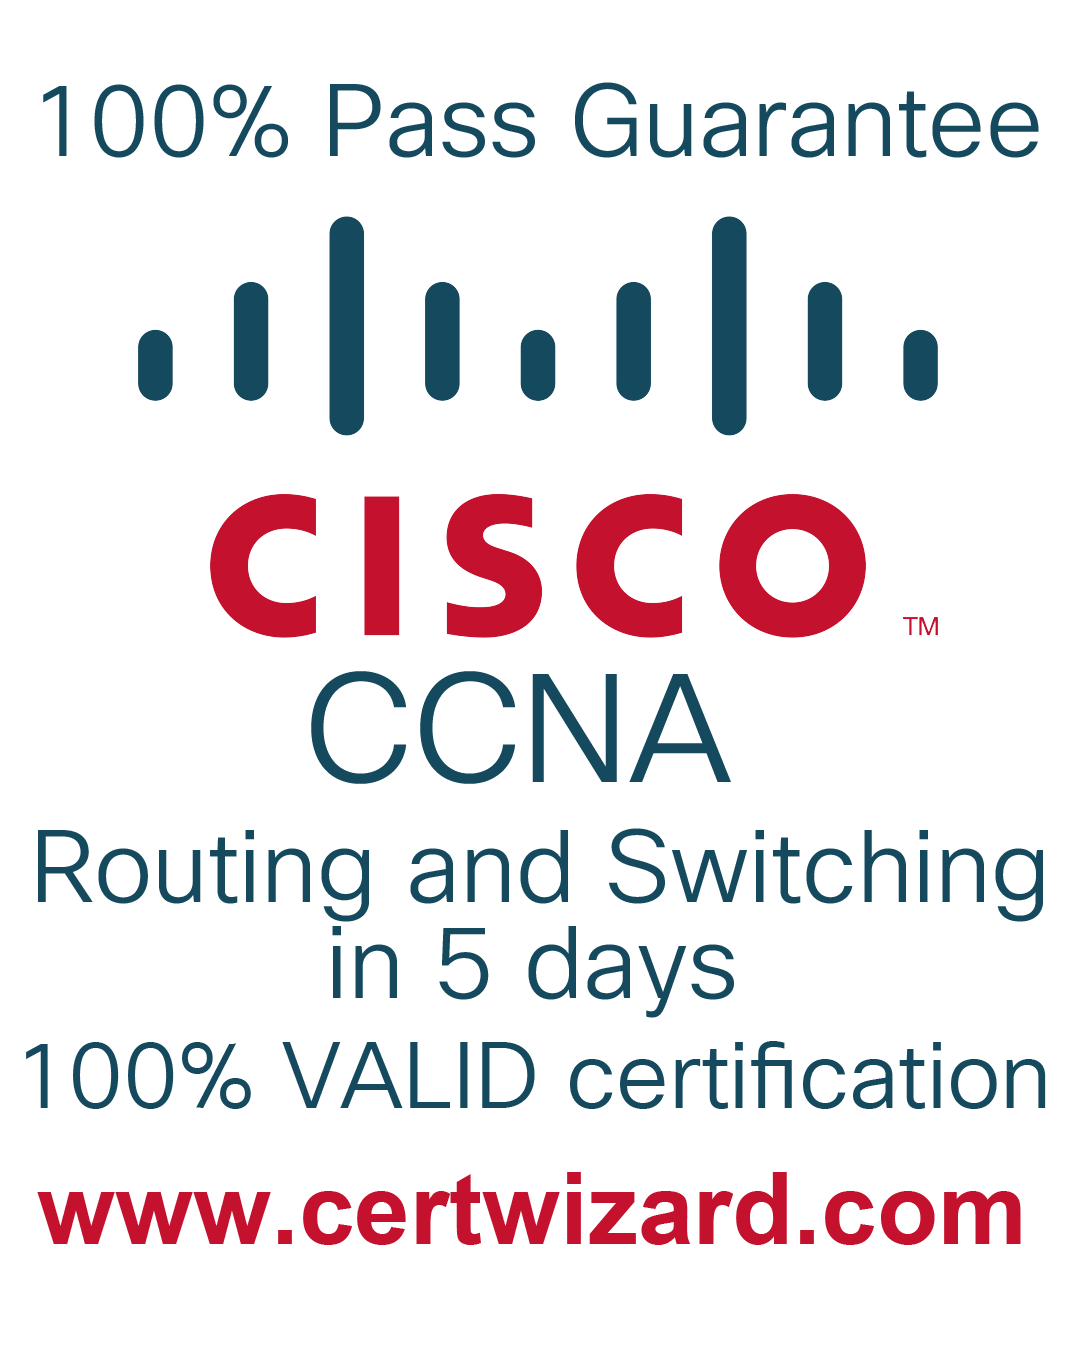 buy ccna certification exam pass without study